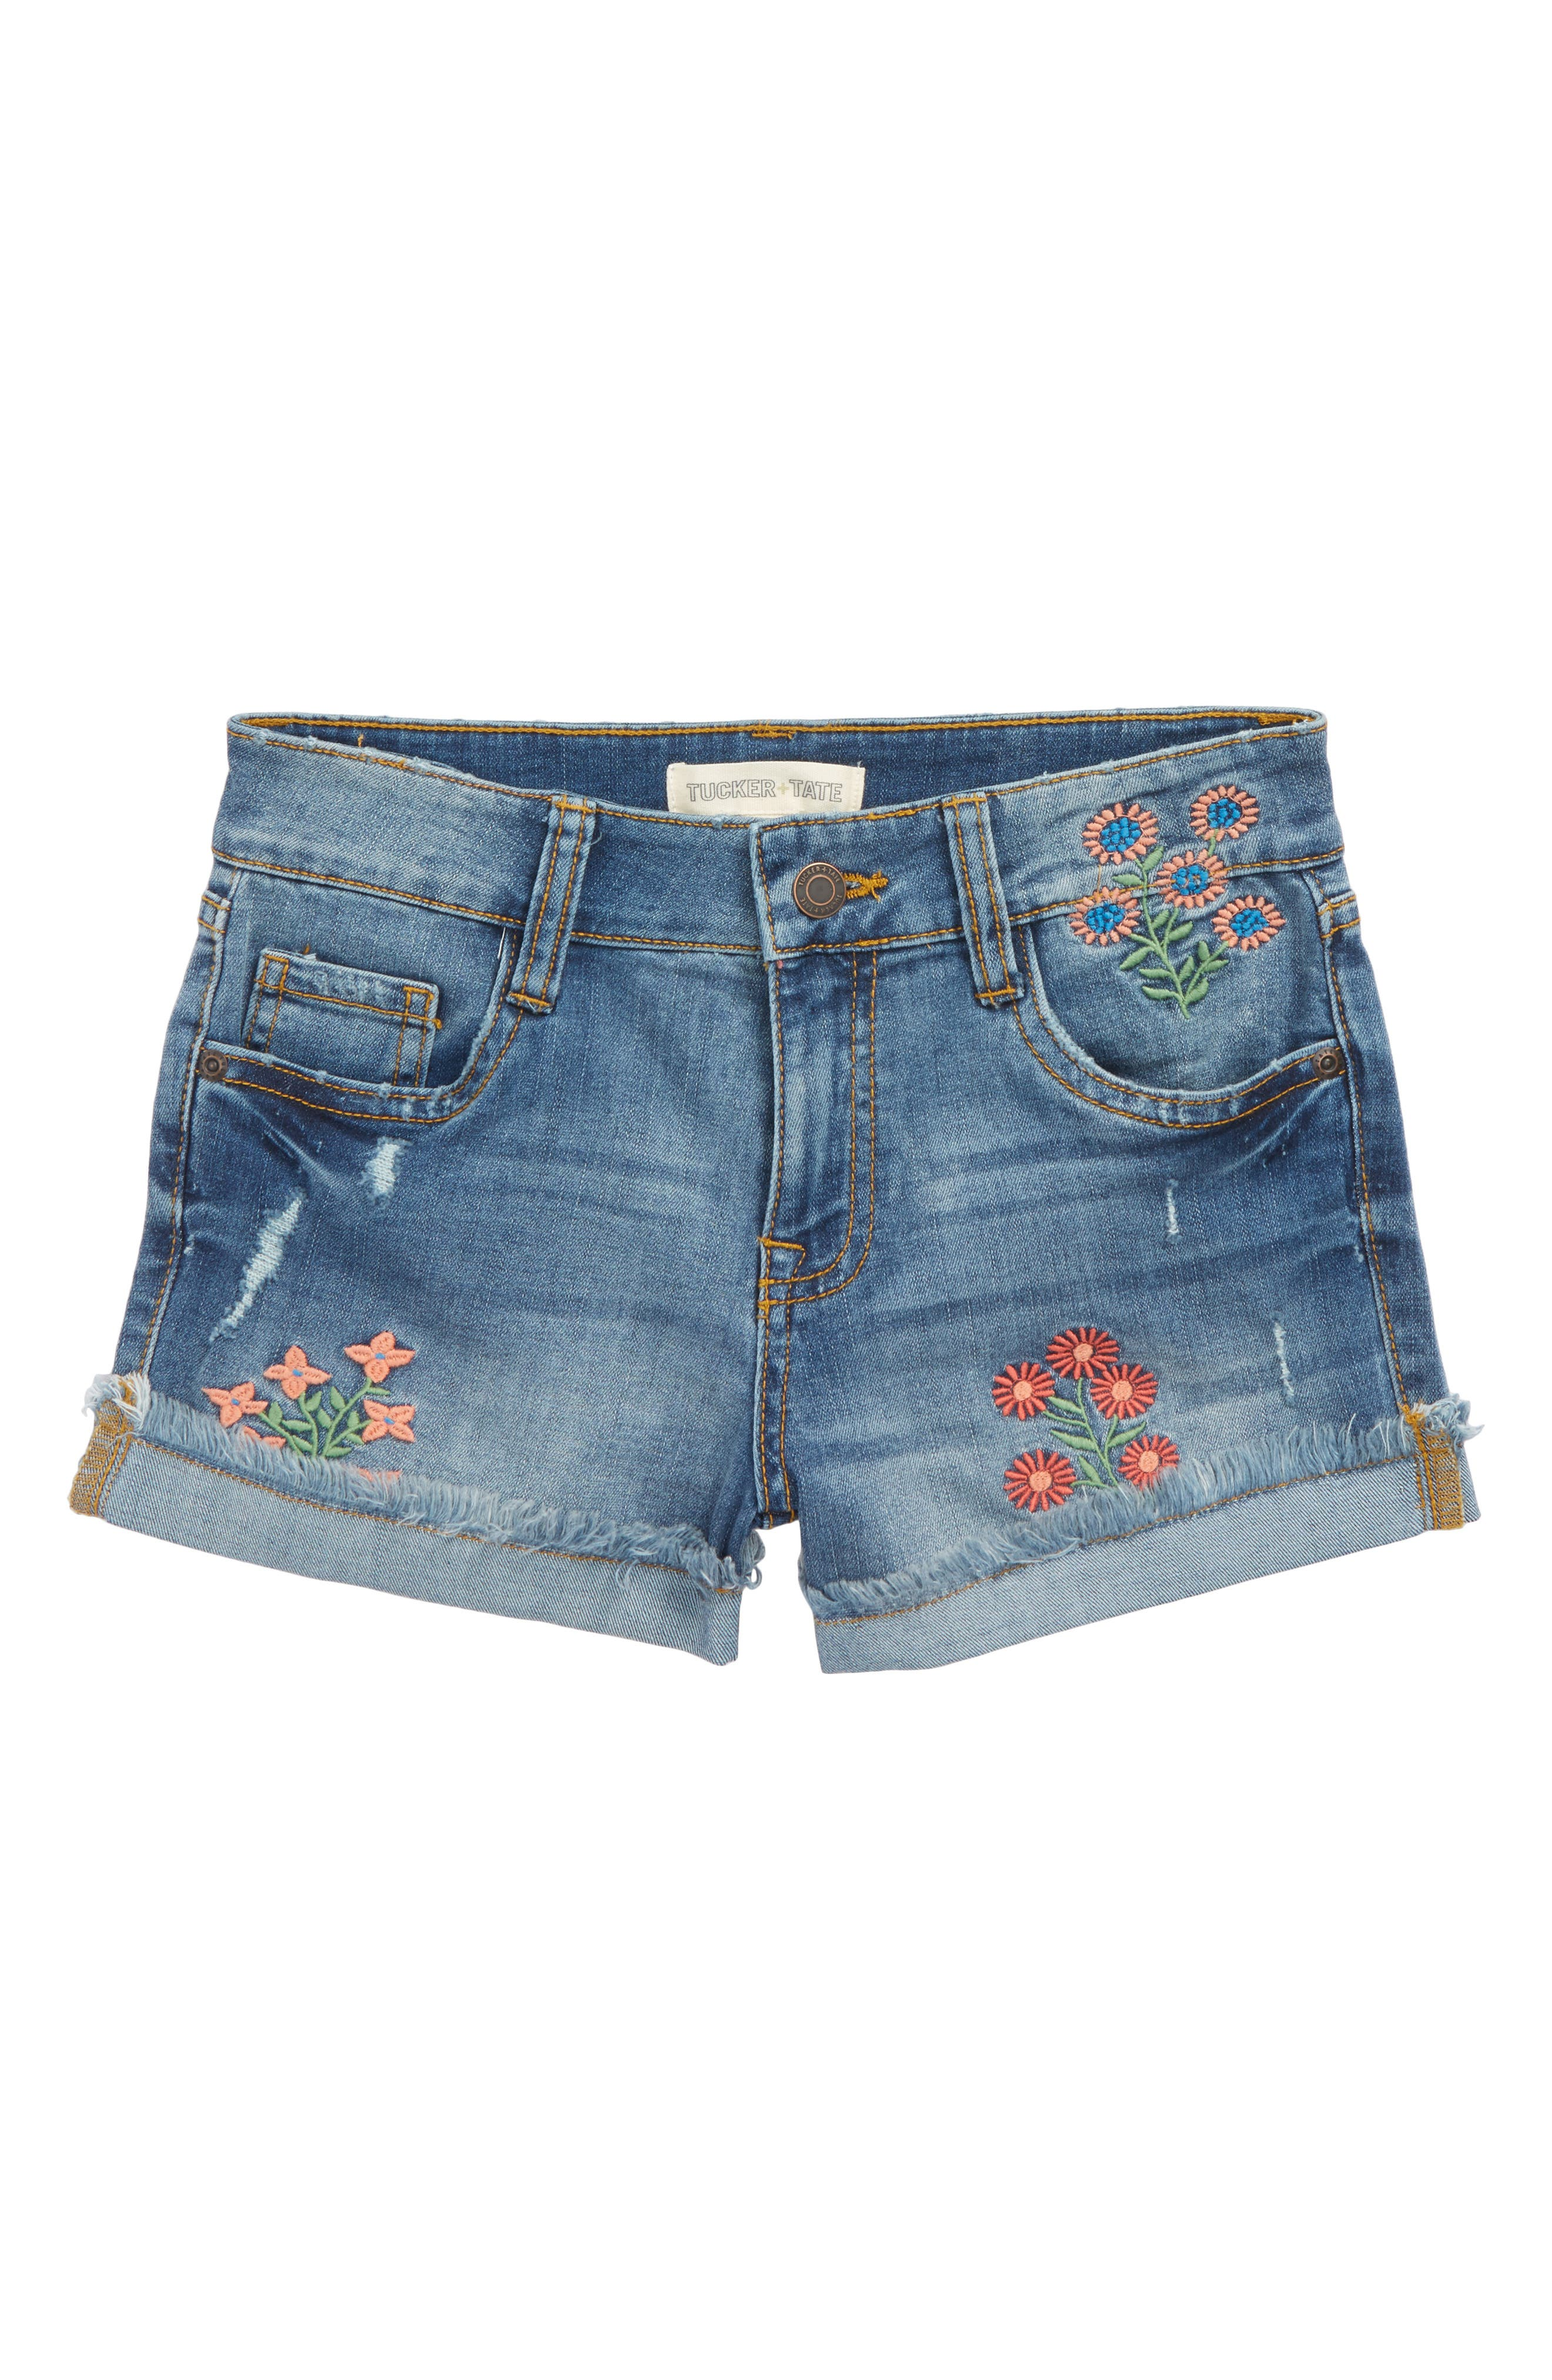 Flower Embroidered Denim Shorts,                             Main thumbnail 1, color,                             Lake Wash